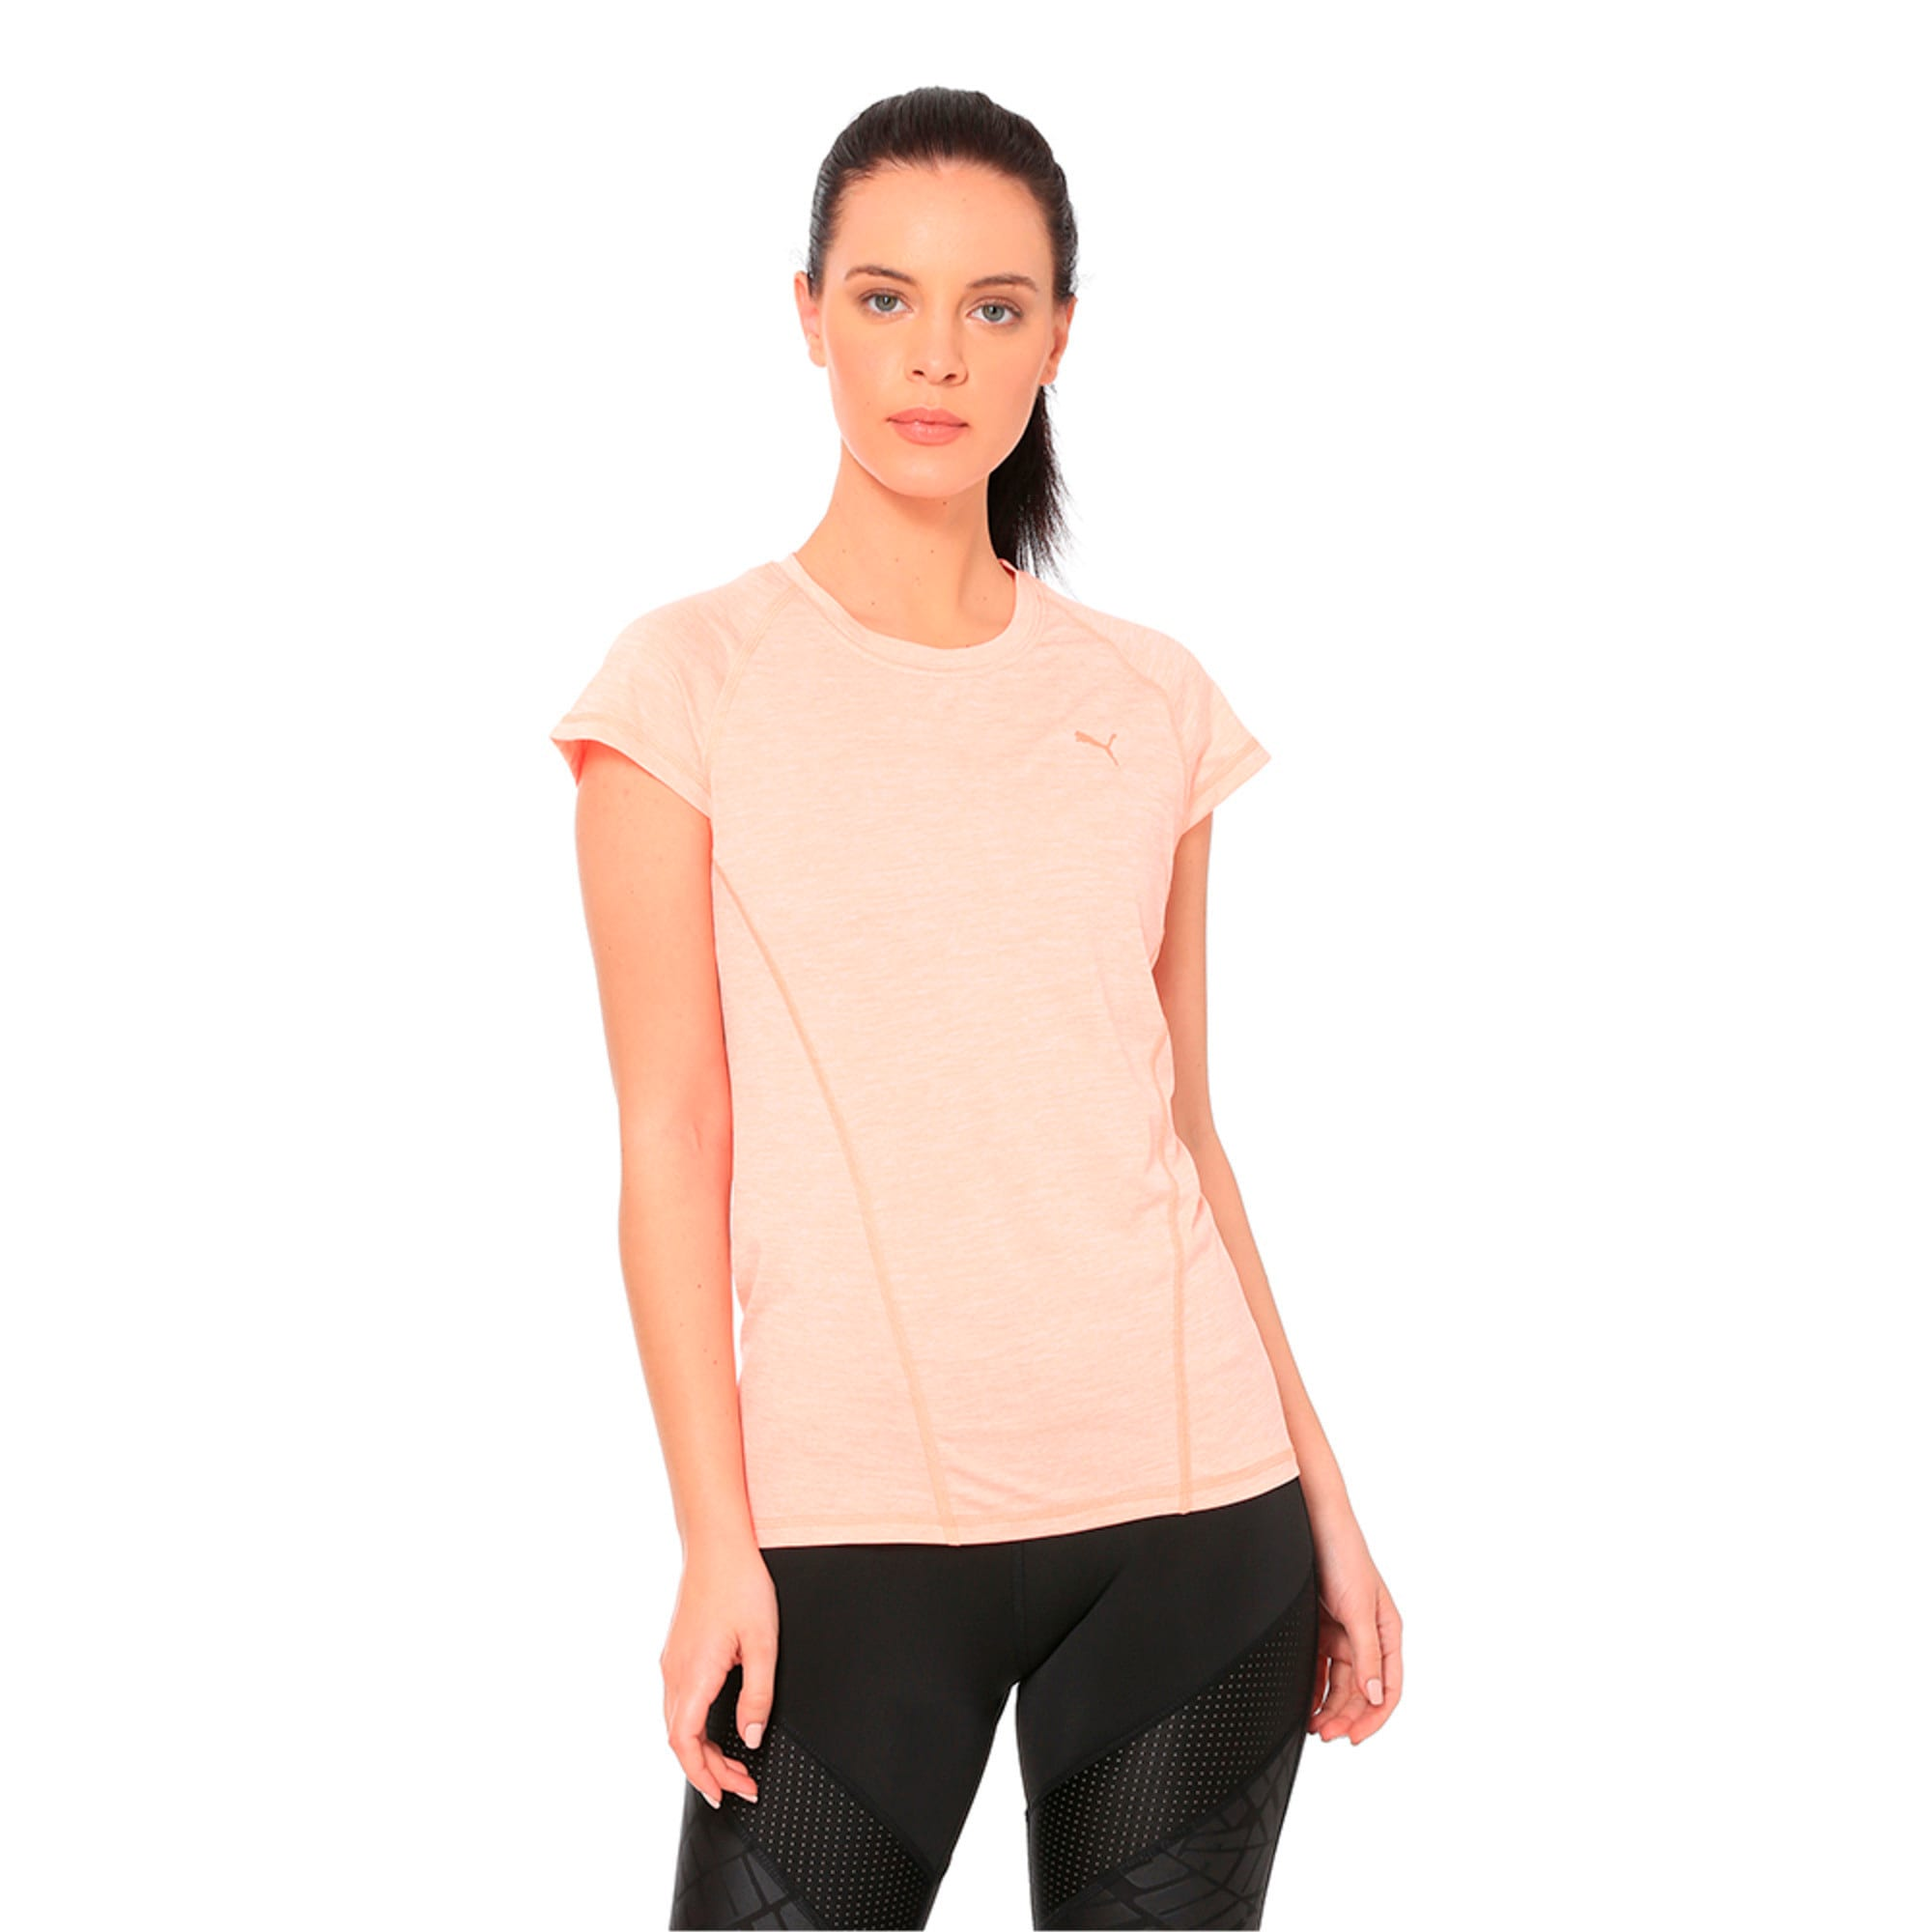 Thumbnail 4 of DeLite Tee, Bright Peach Heather, medium-IND